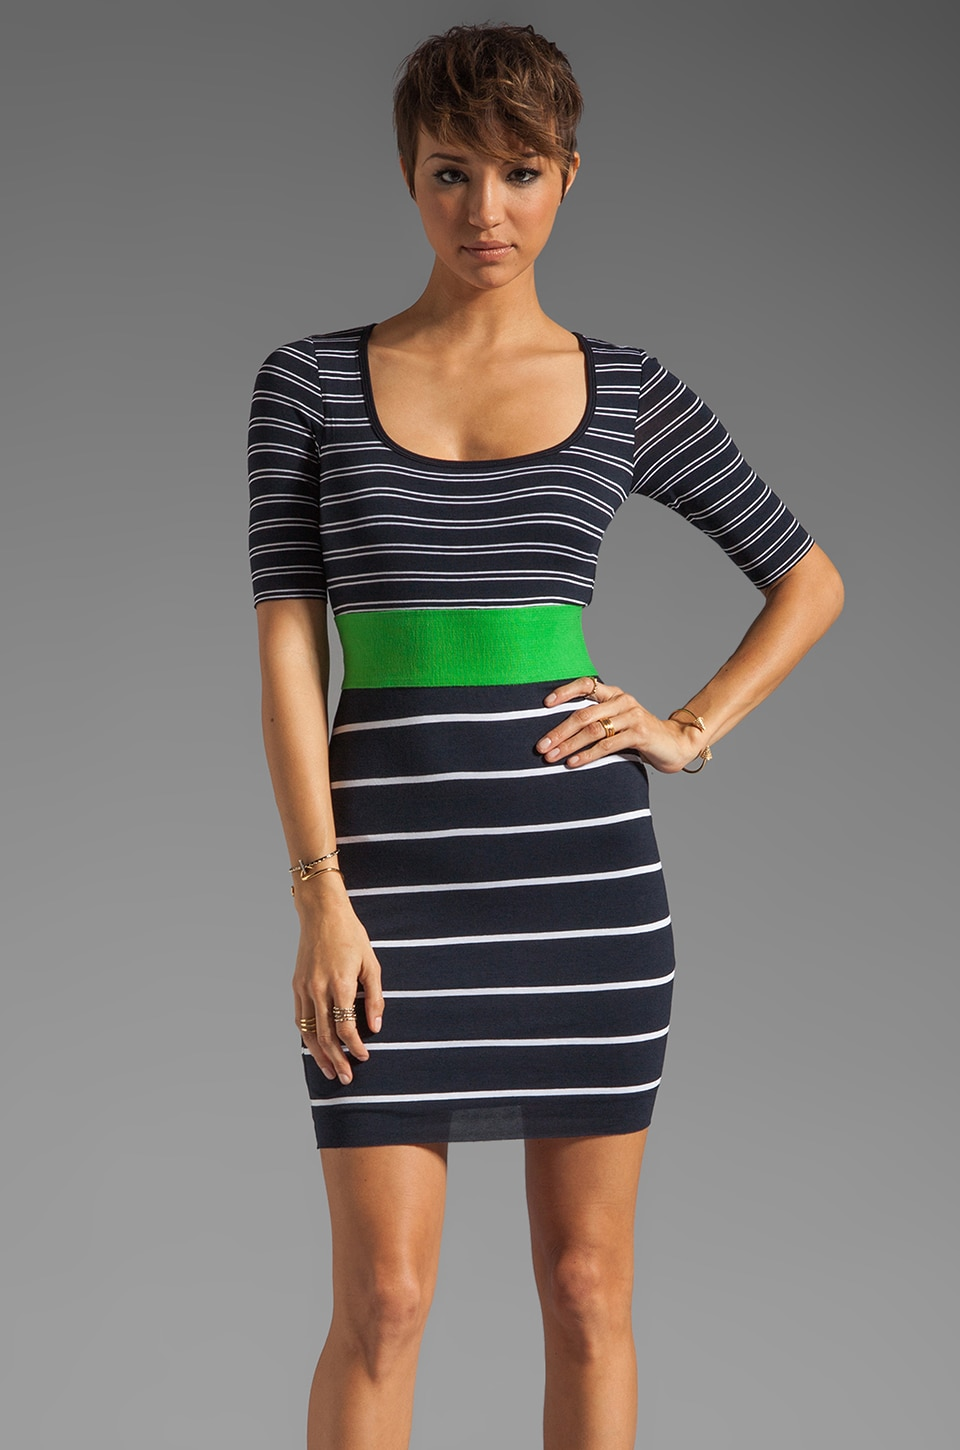 Bailey 44 Synchronized Diving Dress in Navy/Green